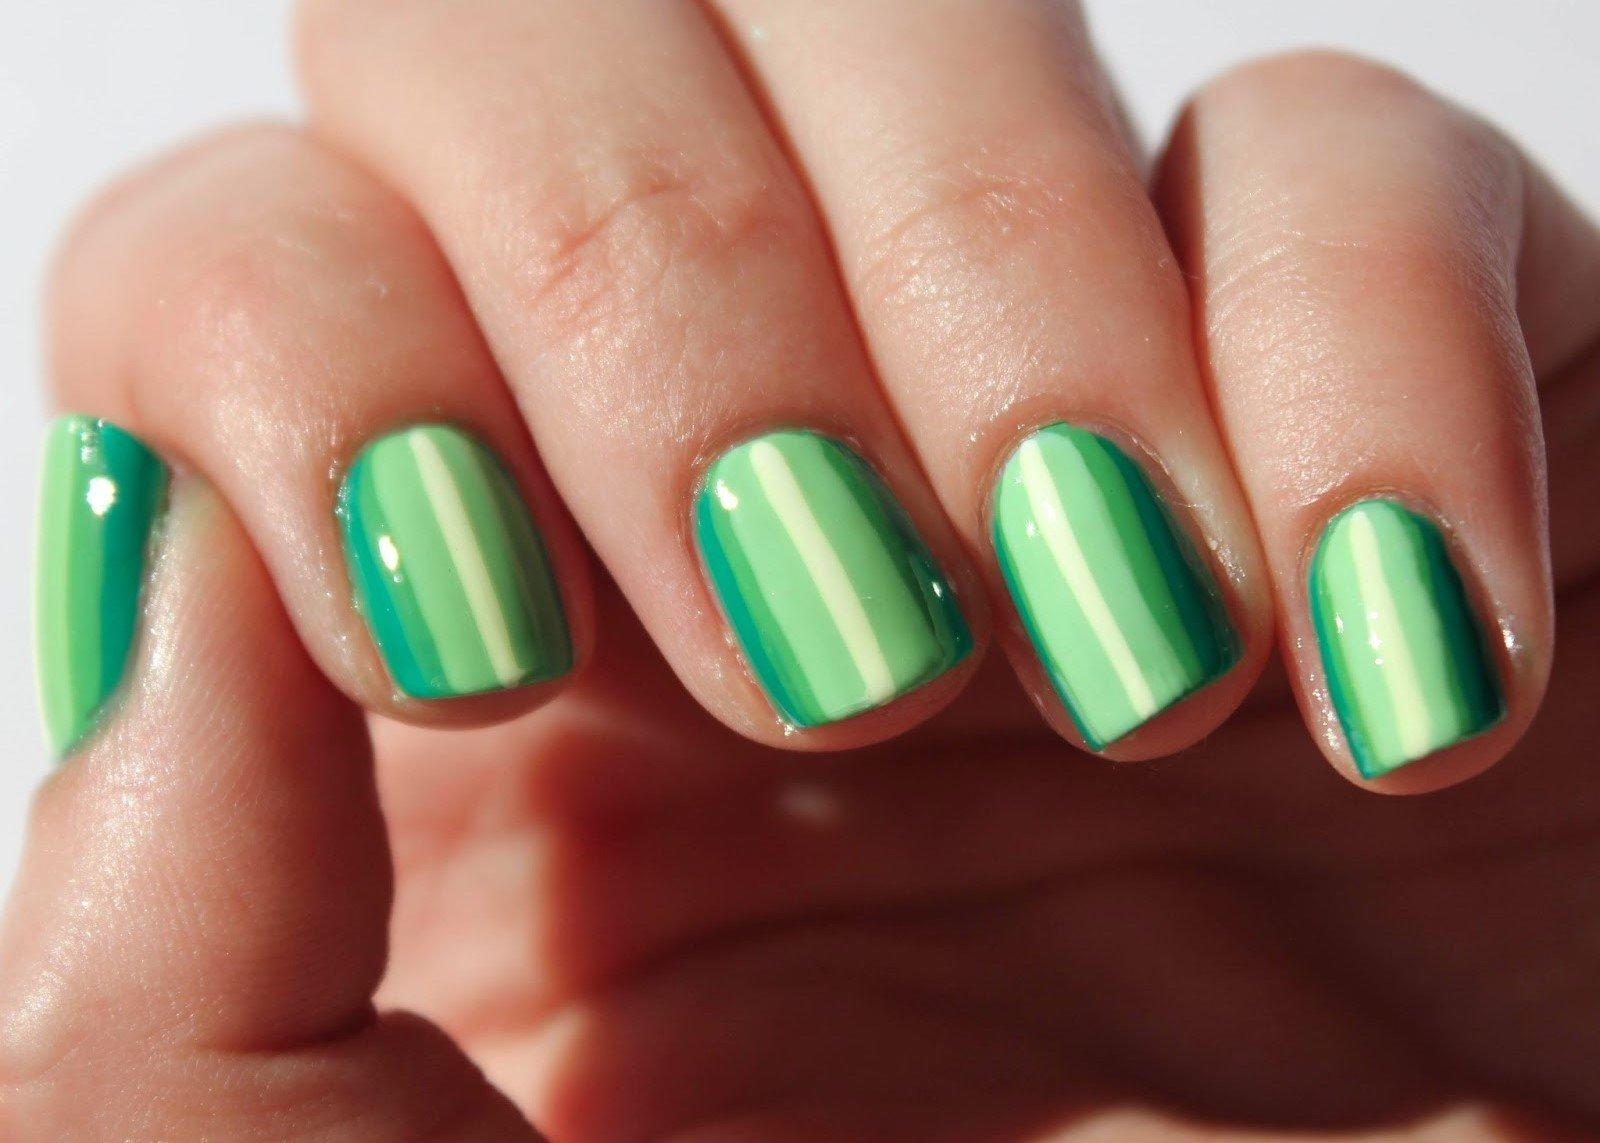 Nail Art Ideas shamrock nail art tutorial : A Dash Of Stylish Green For St. Patty's Day With These 16 Nail Art ...